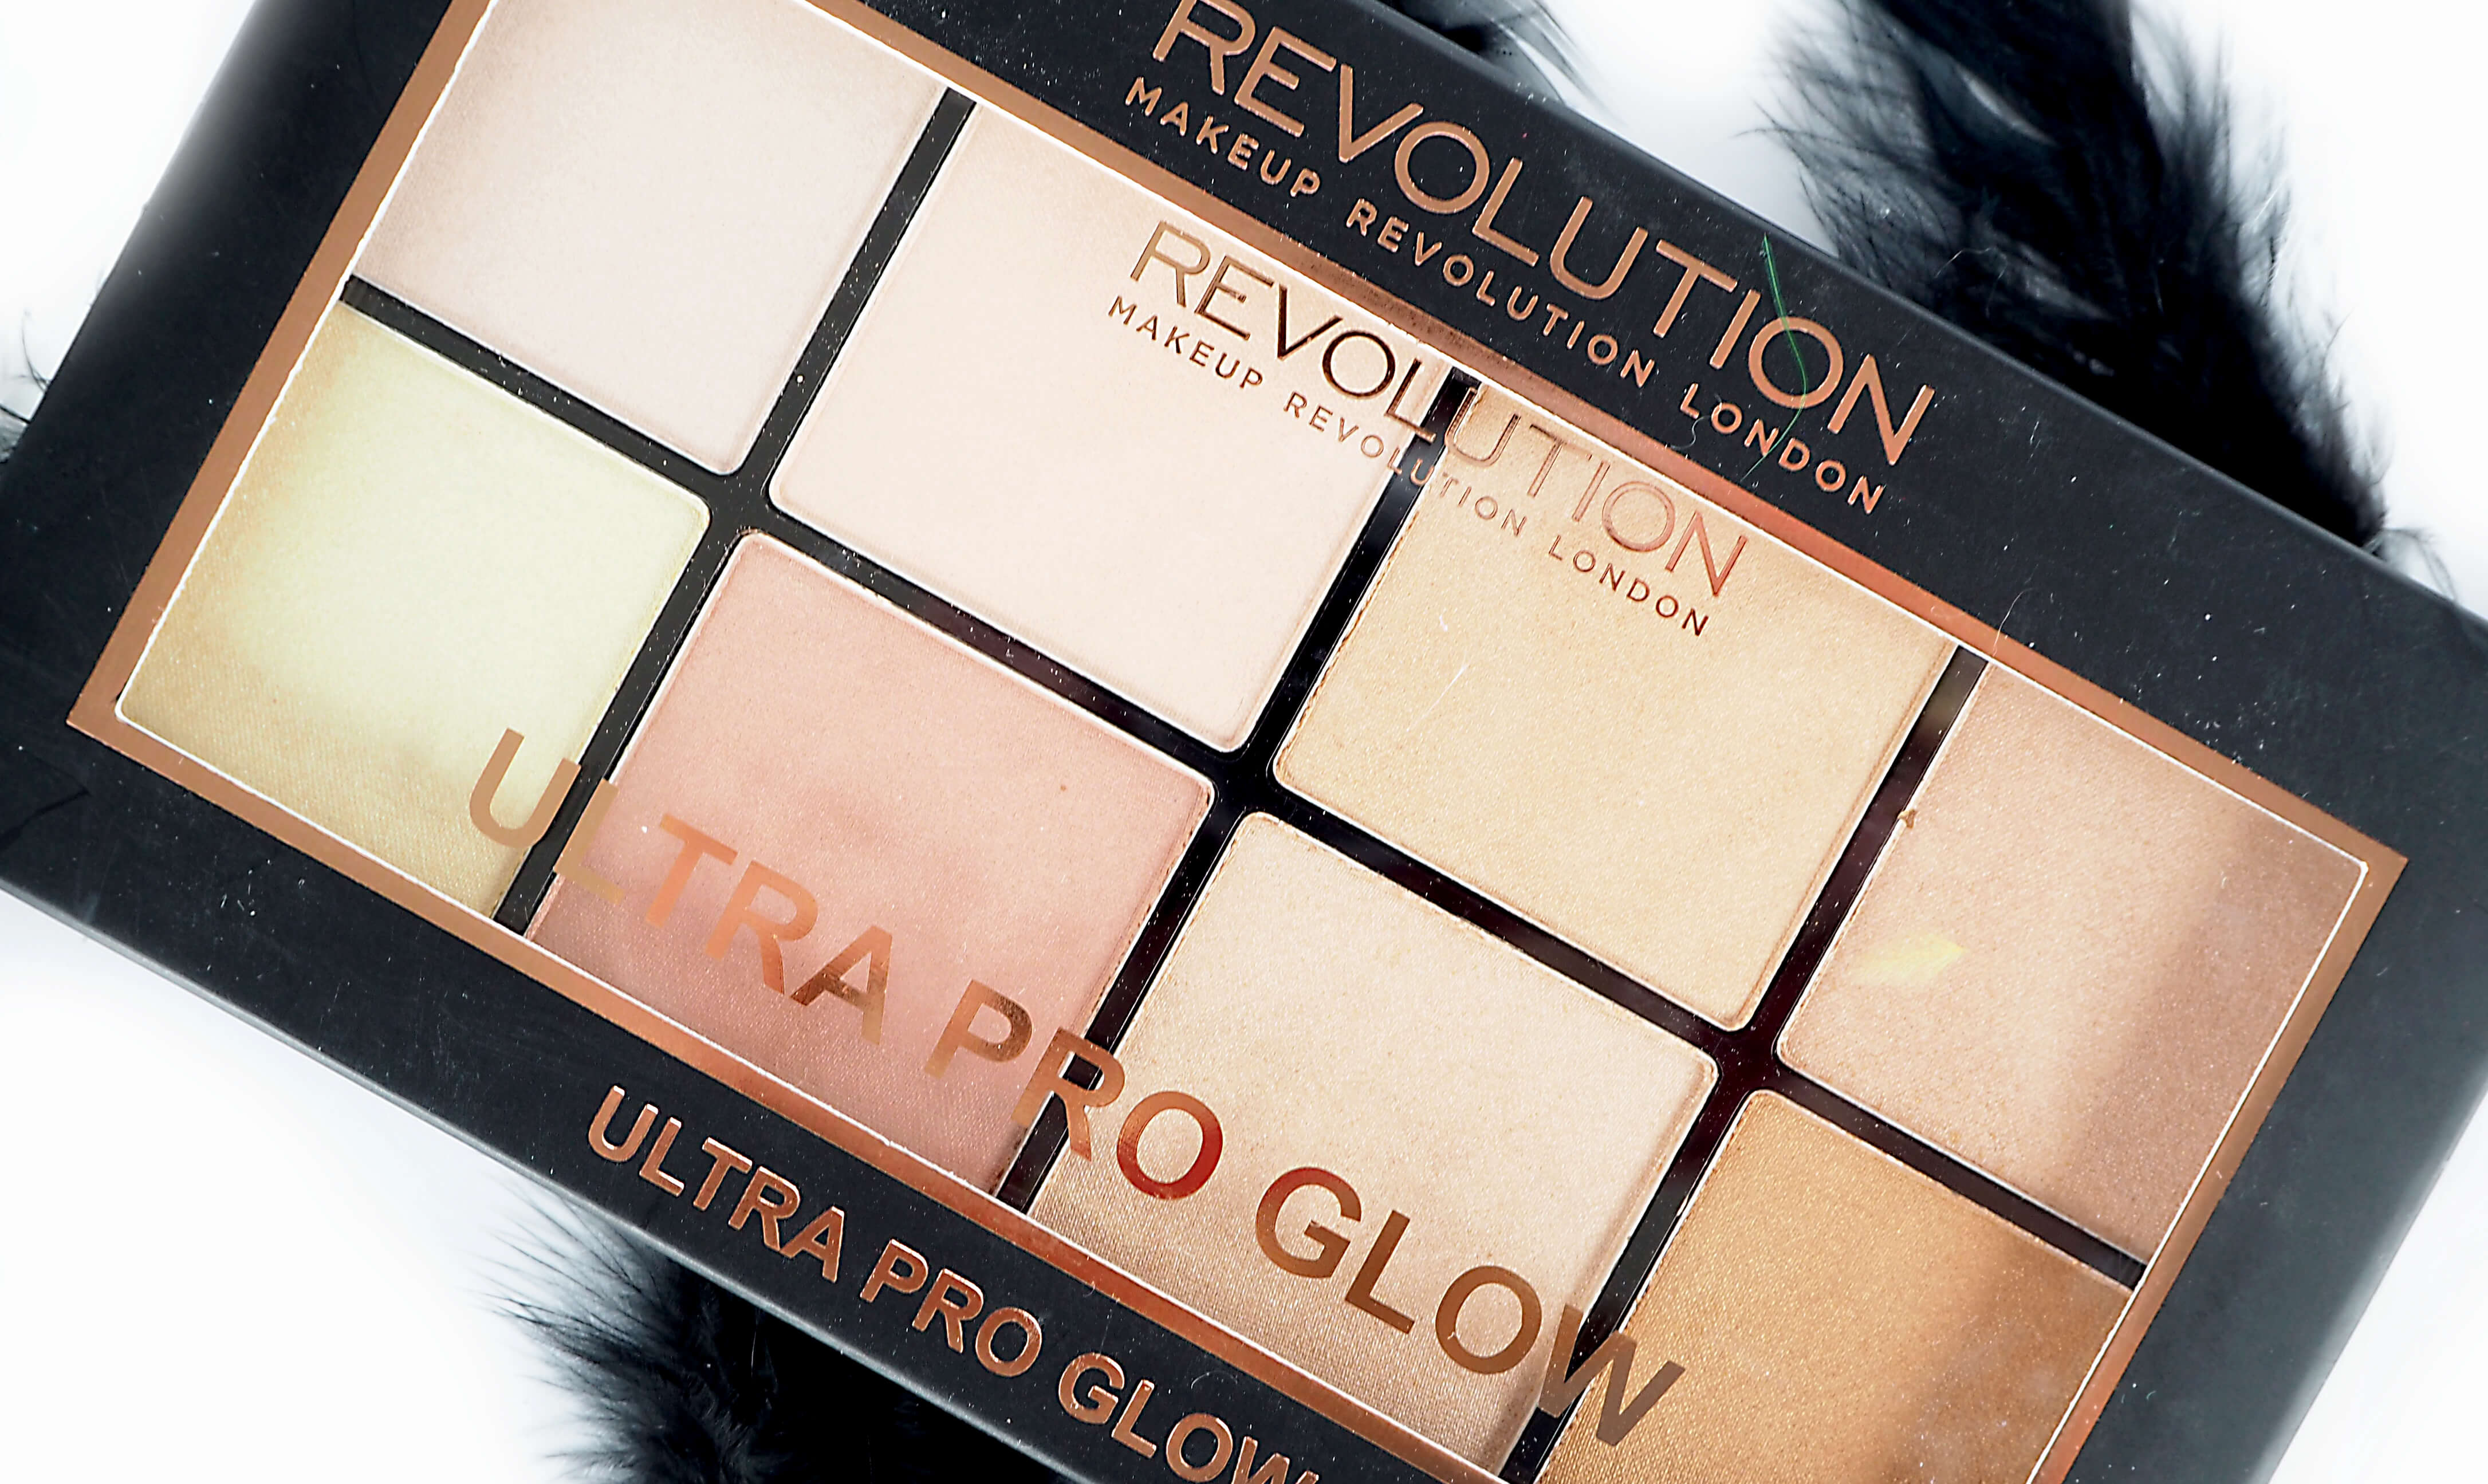 TEST MAKEUP REVOLUTION ULTRA PRO GLOW